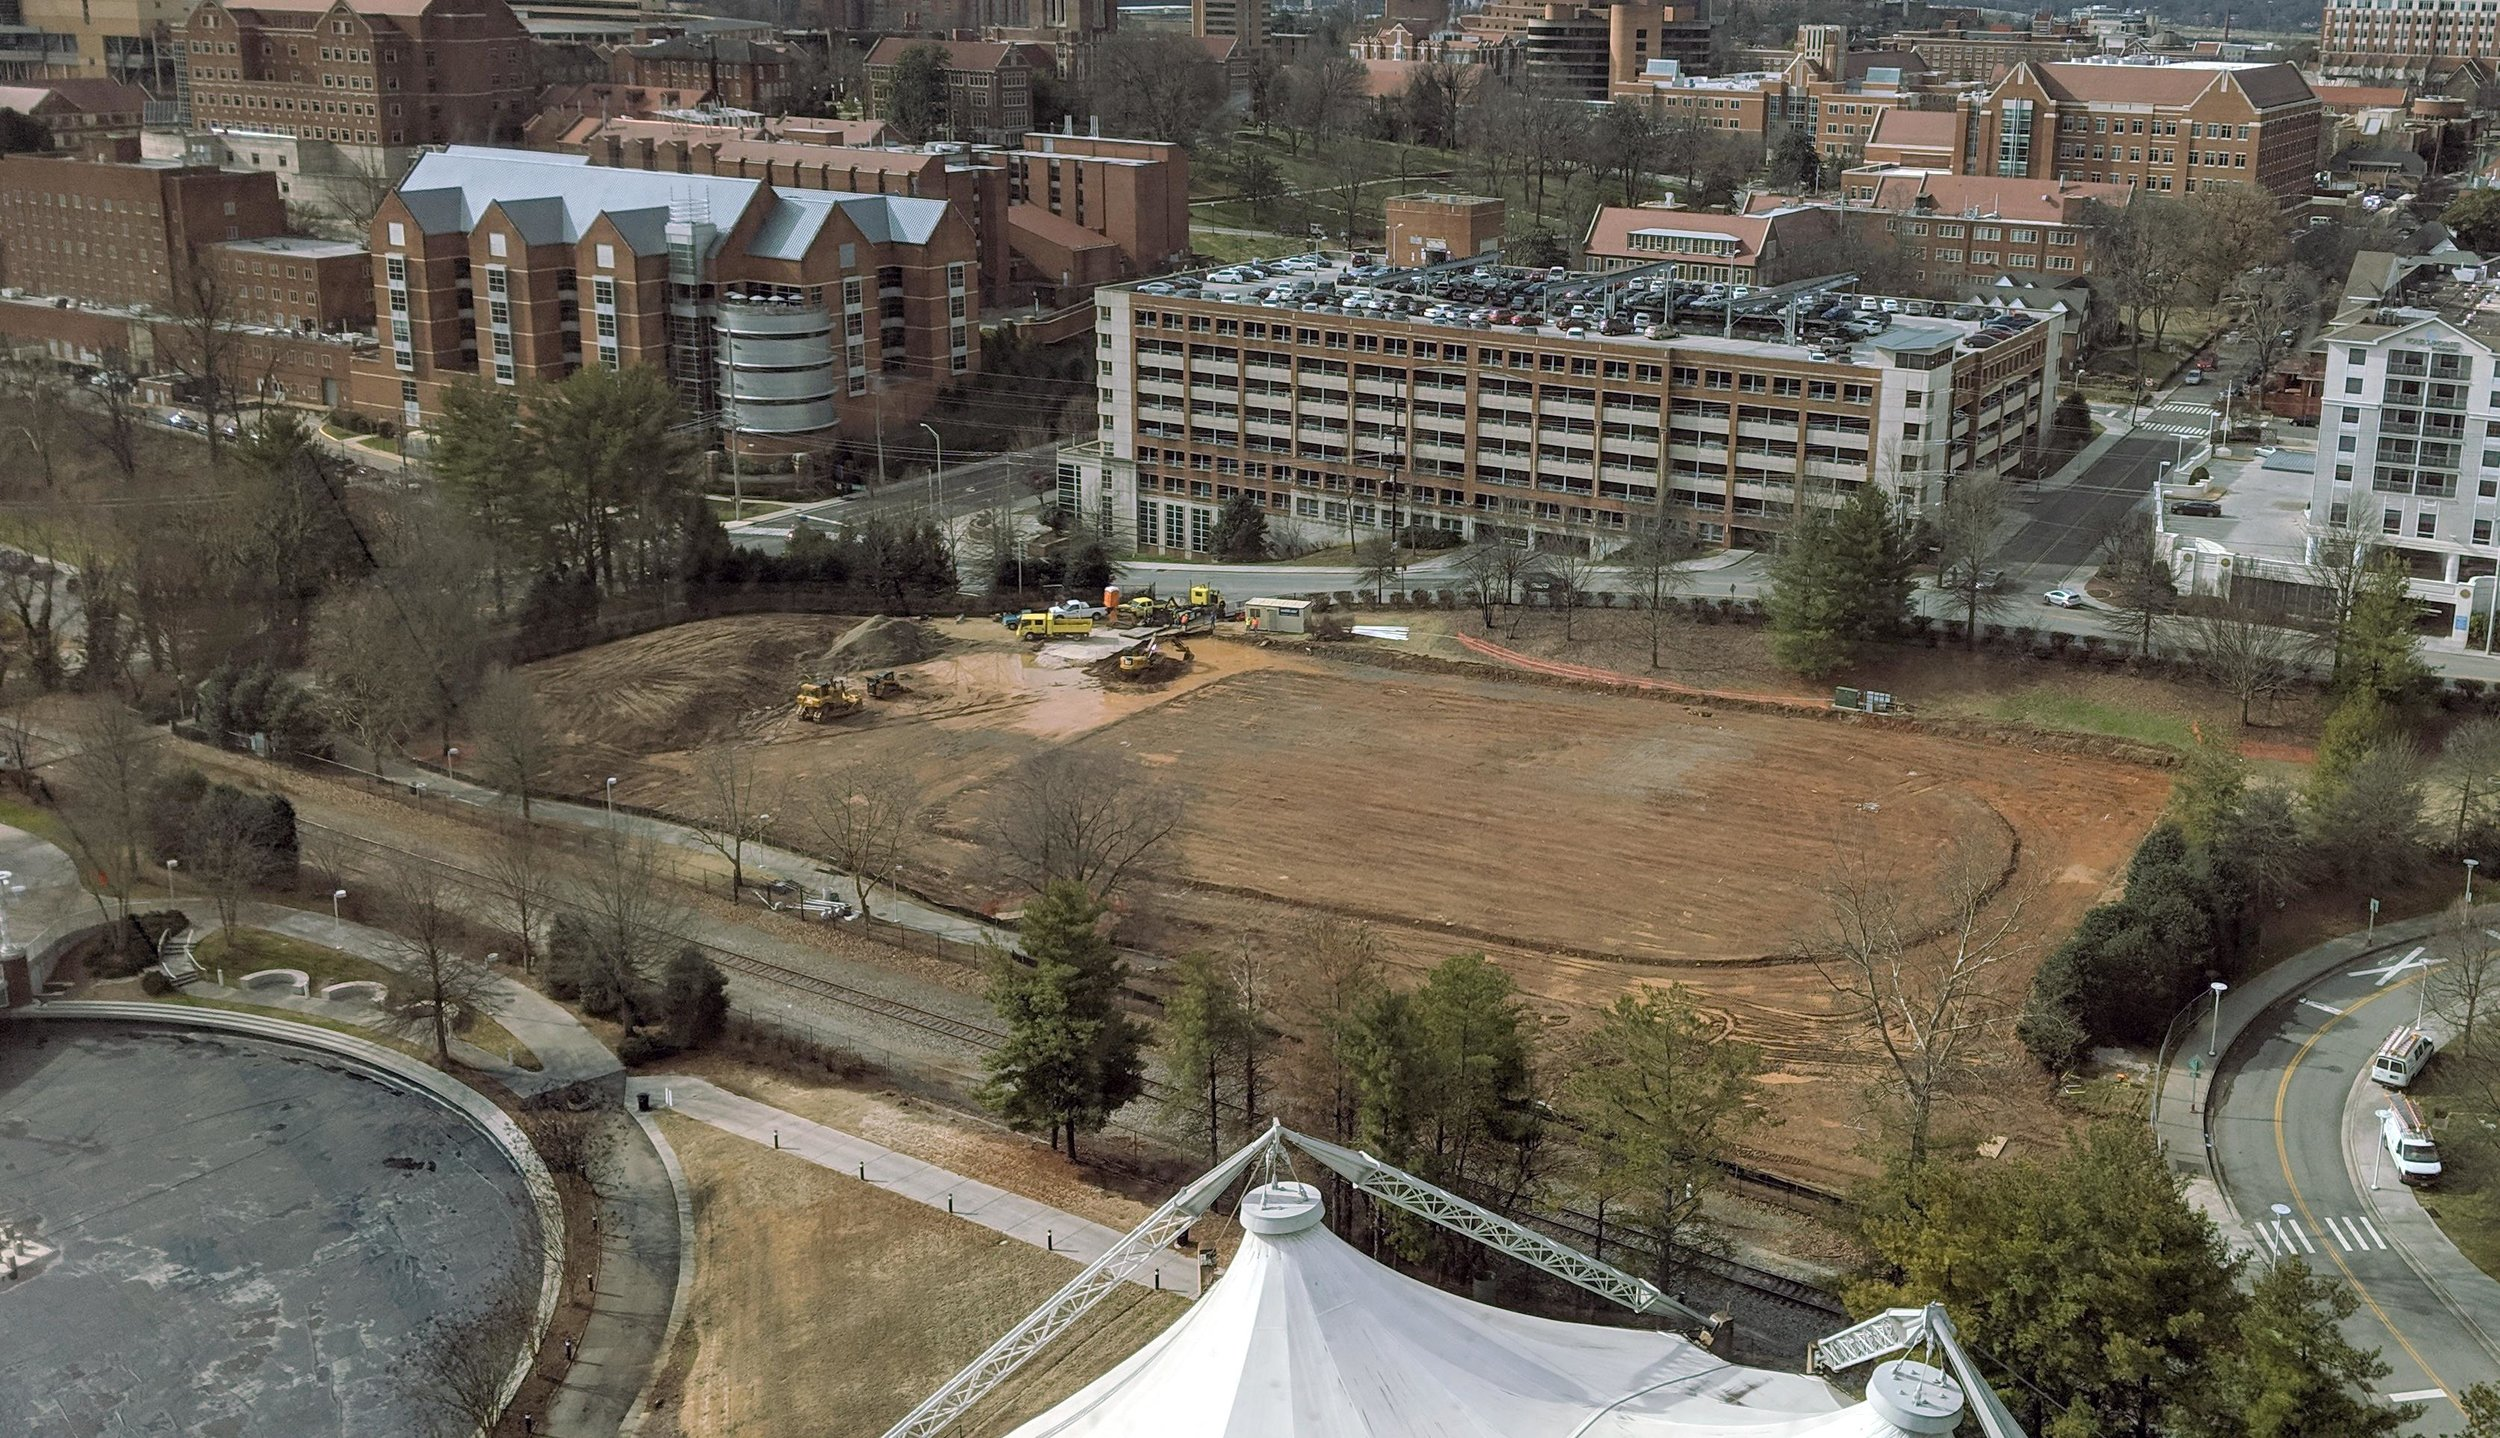 February 14, 2019 -- Rough Grading 90% Complete